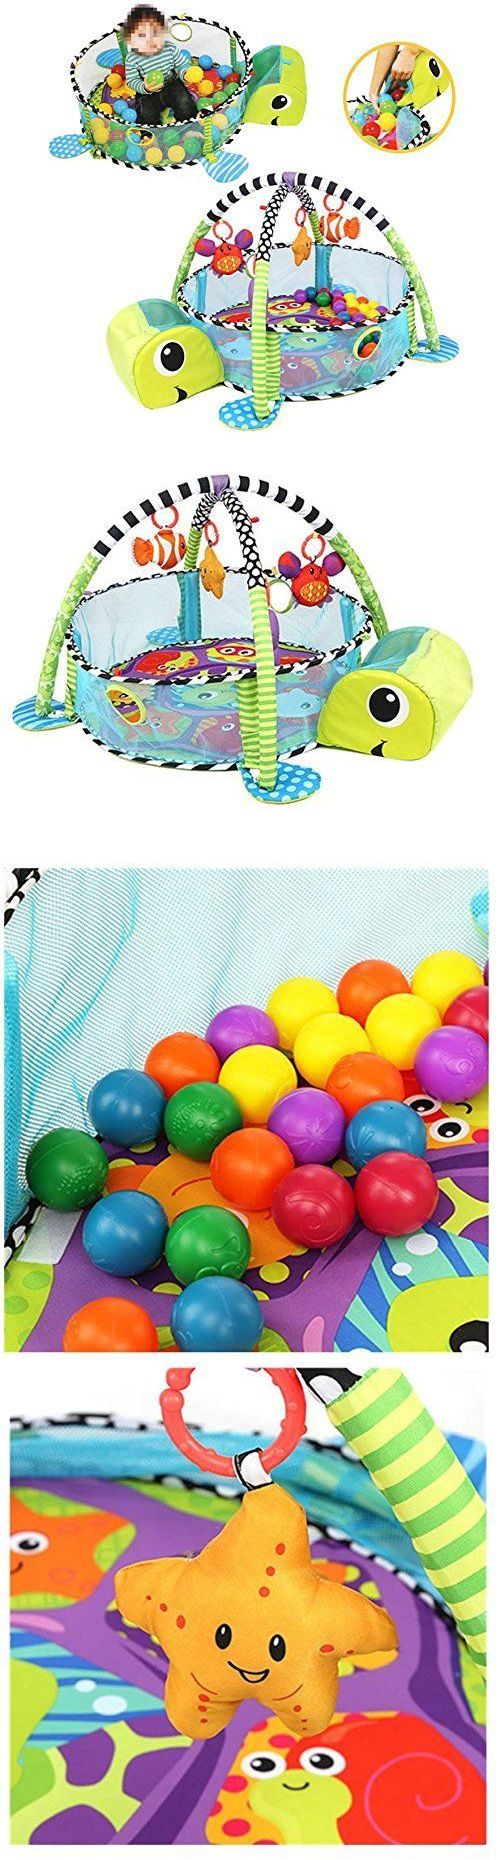 infant mats play square floor mat best snug youtube watch baby